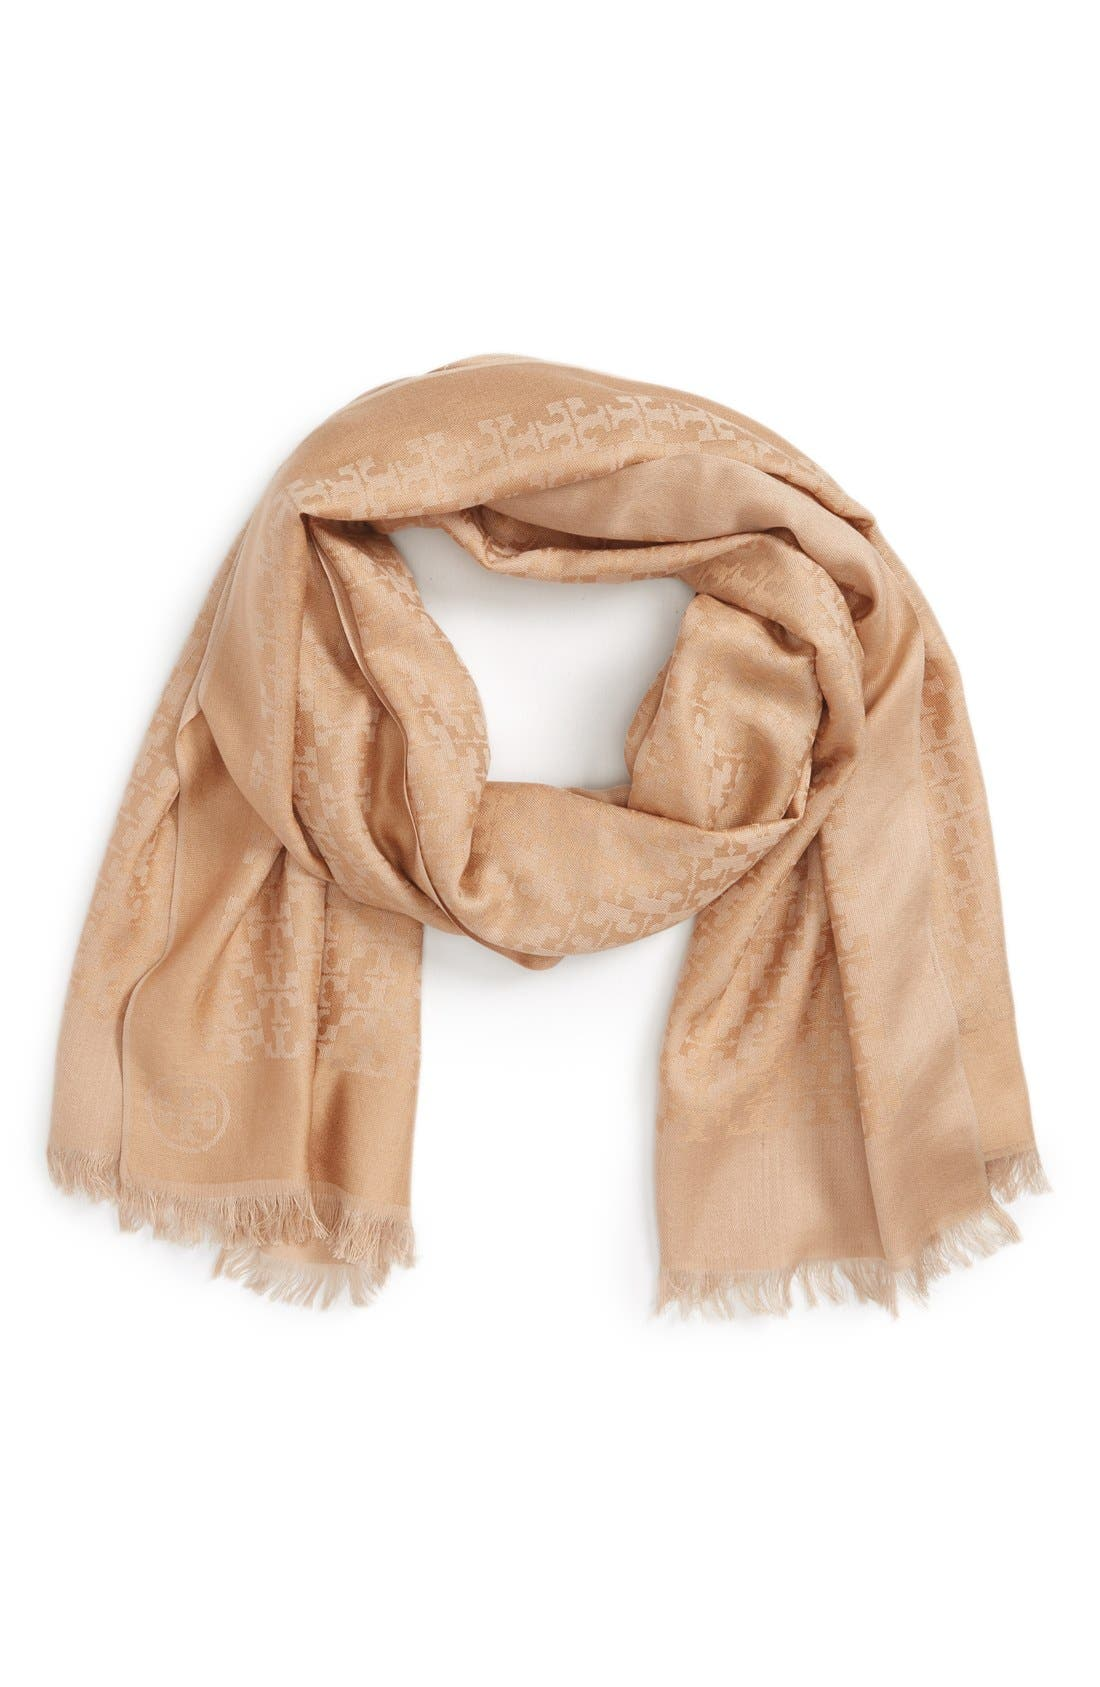 Main Image - Tory Burch 'All-Over T' Silk & Cotton Jacquard Scarf